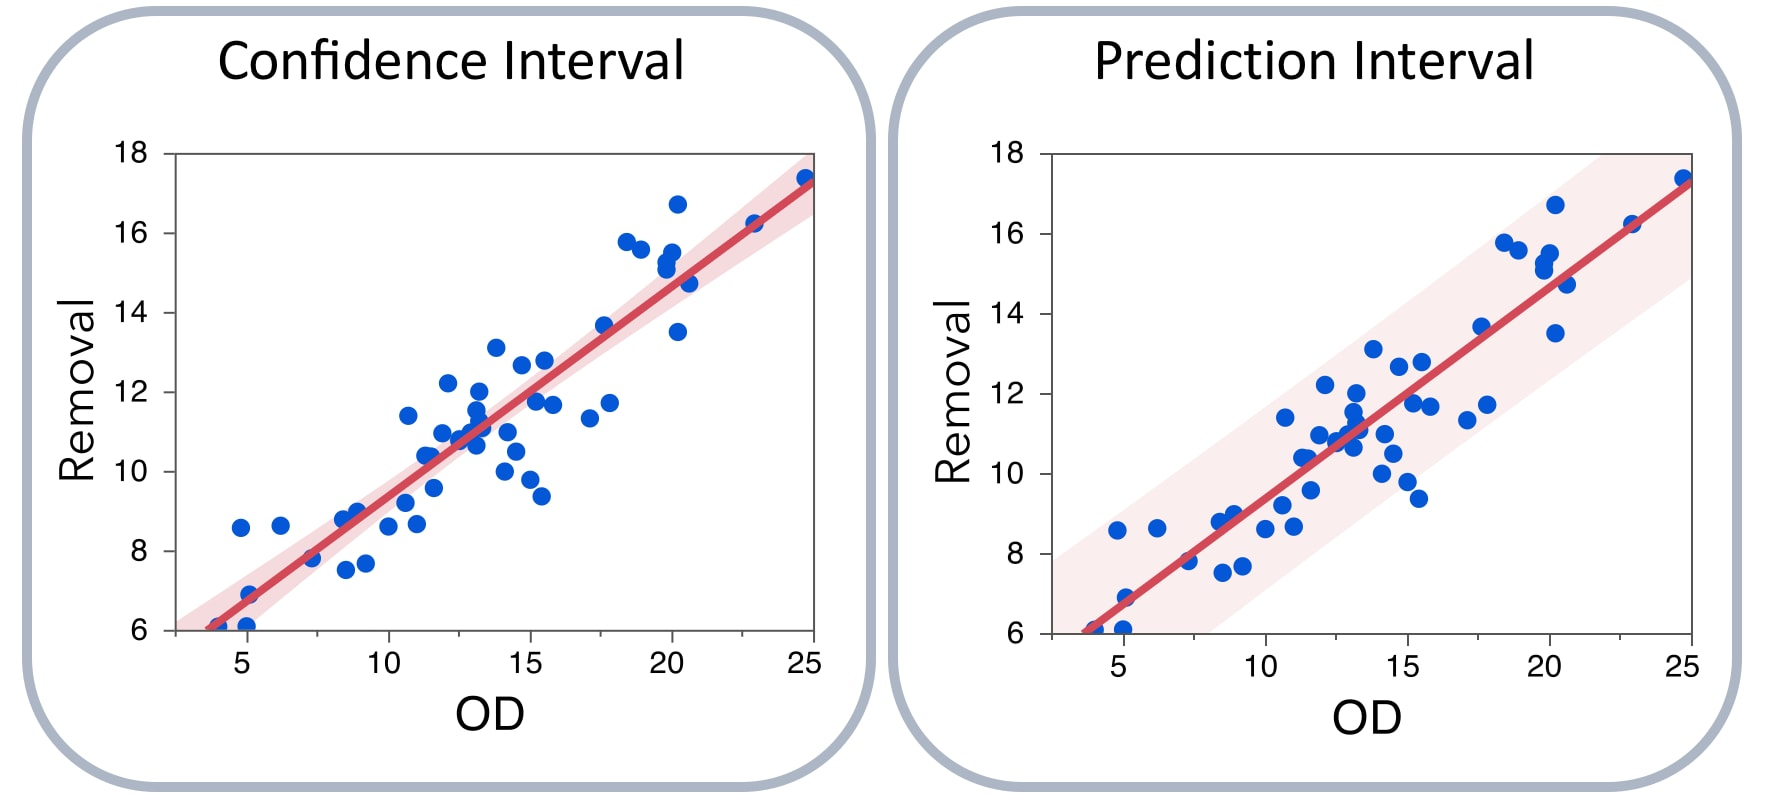 Confidence and Prediction Intervals